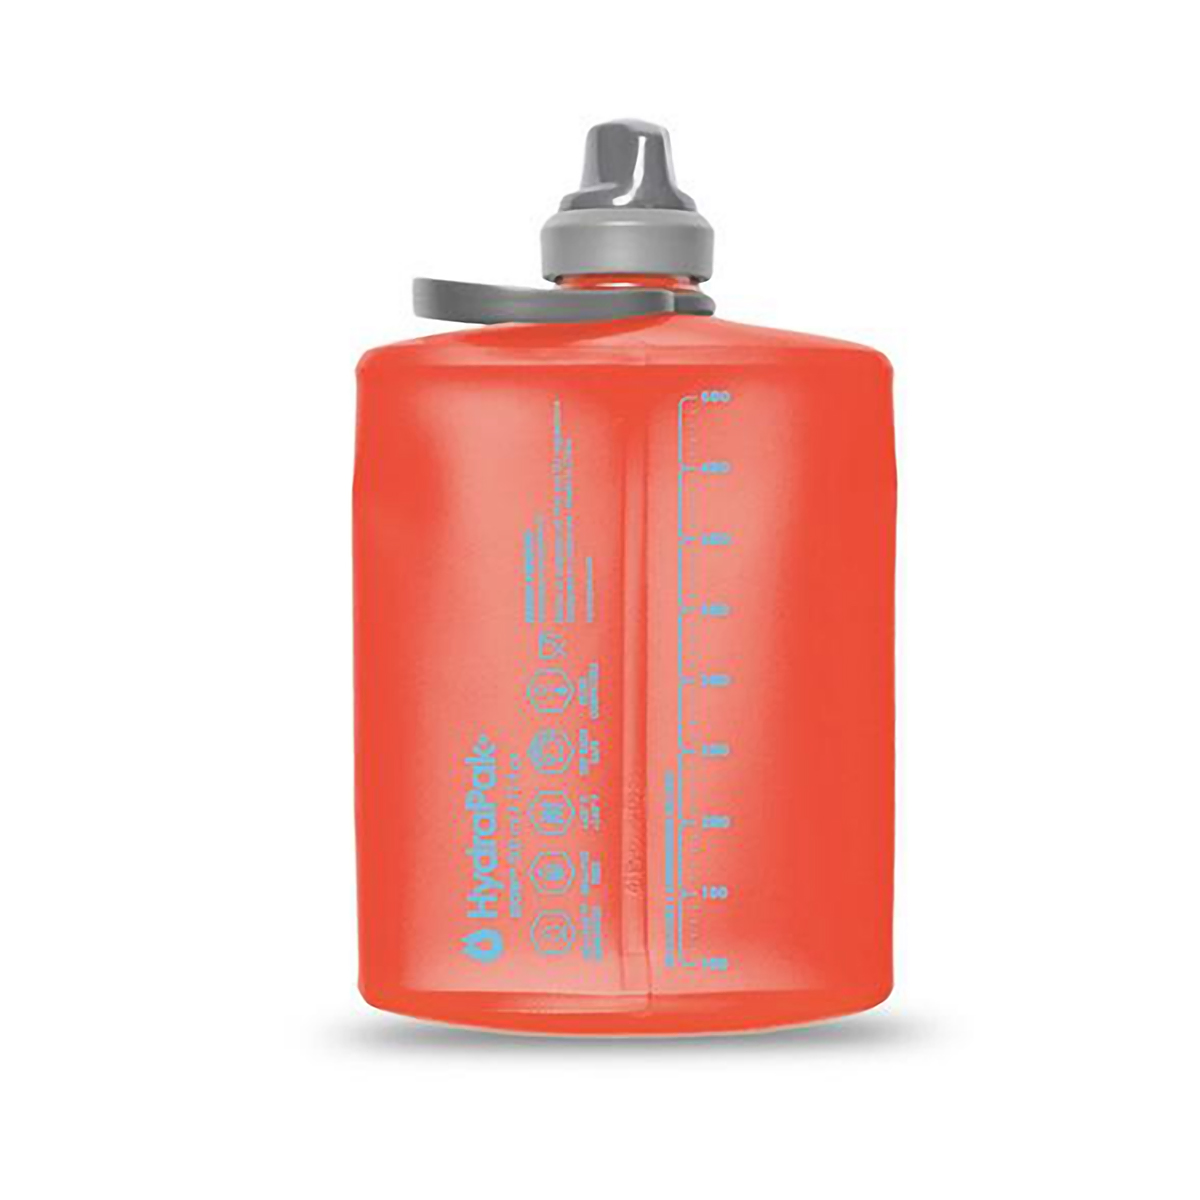 Hydrapak Stow 500 mL Collapsible Water Bottle - Color: Redwoods - Size: 500 mL, Redwoods, large, image 2